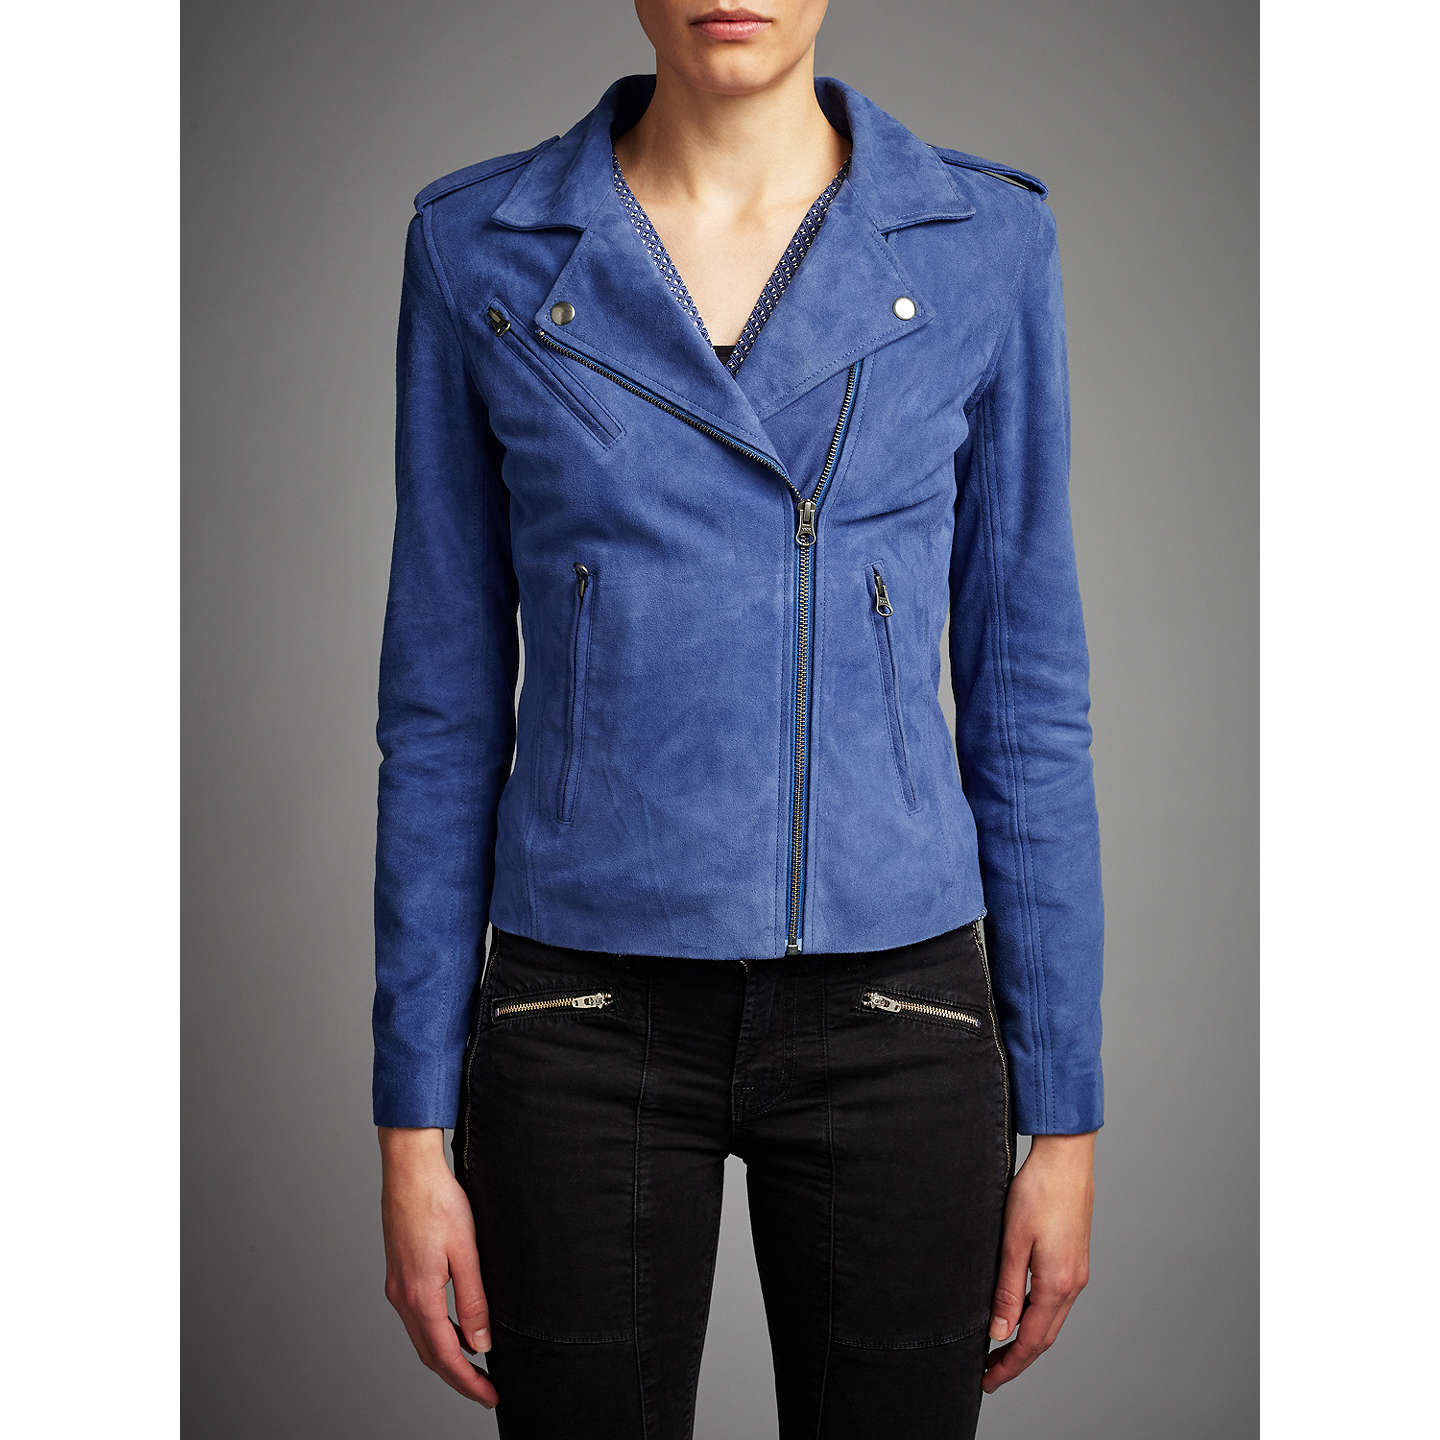 BuyDenim Wardrobe by Trilogy Harley Suede Jacket, Blue, 12 Online at johnlewis.com